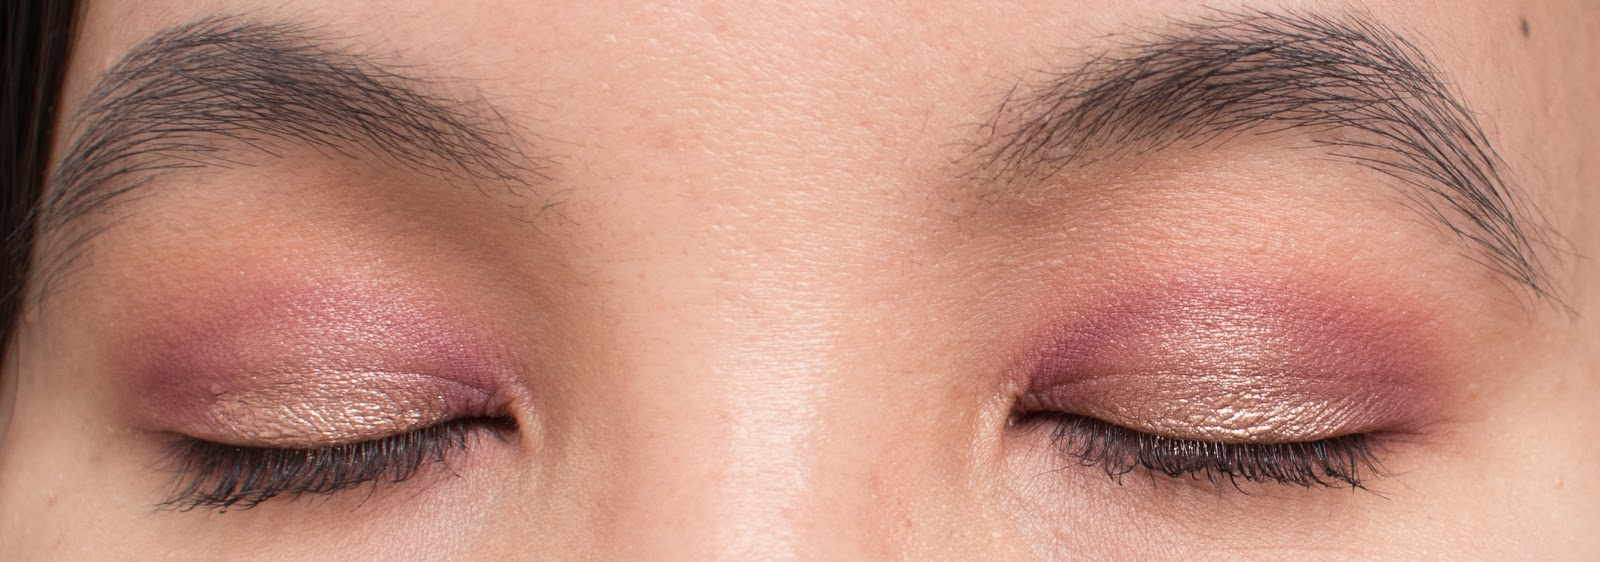 Warm Berries Makeup Look Closed Eye